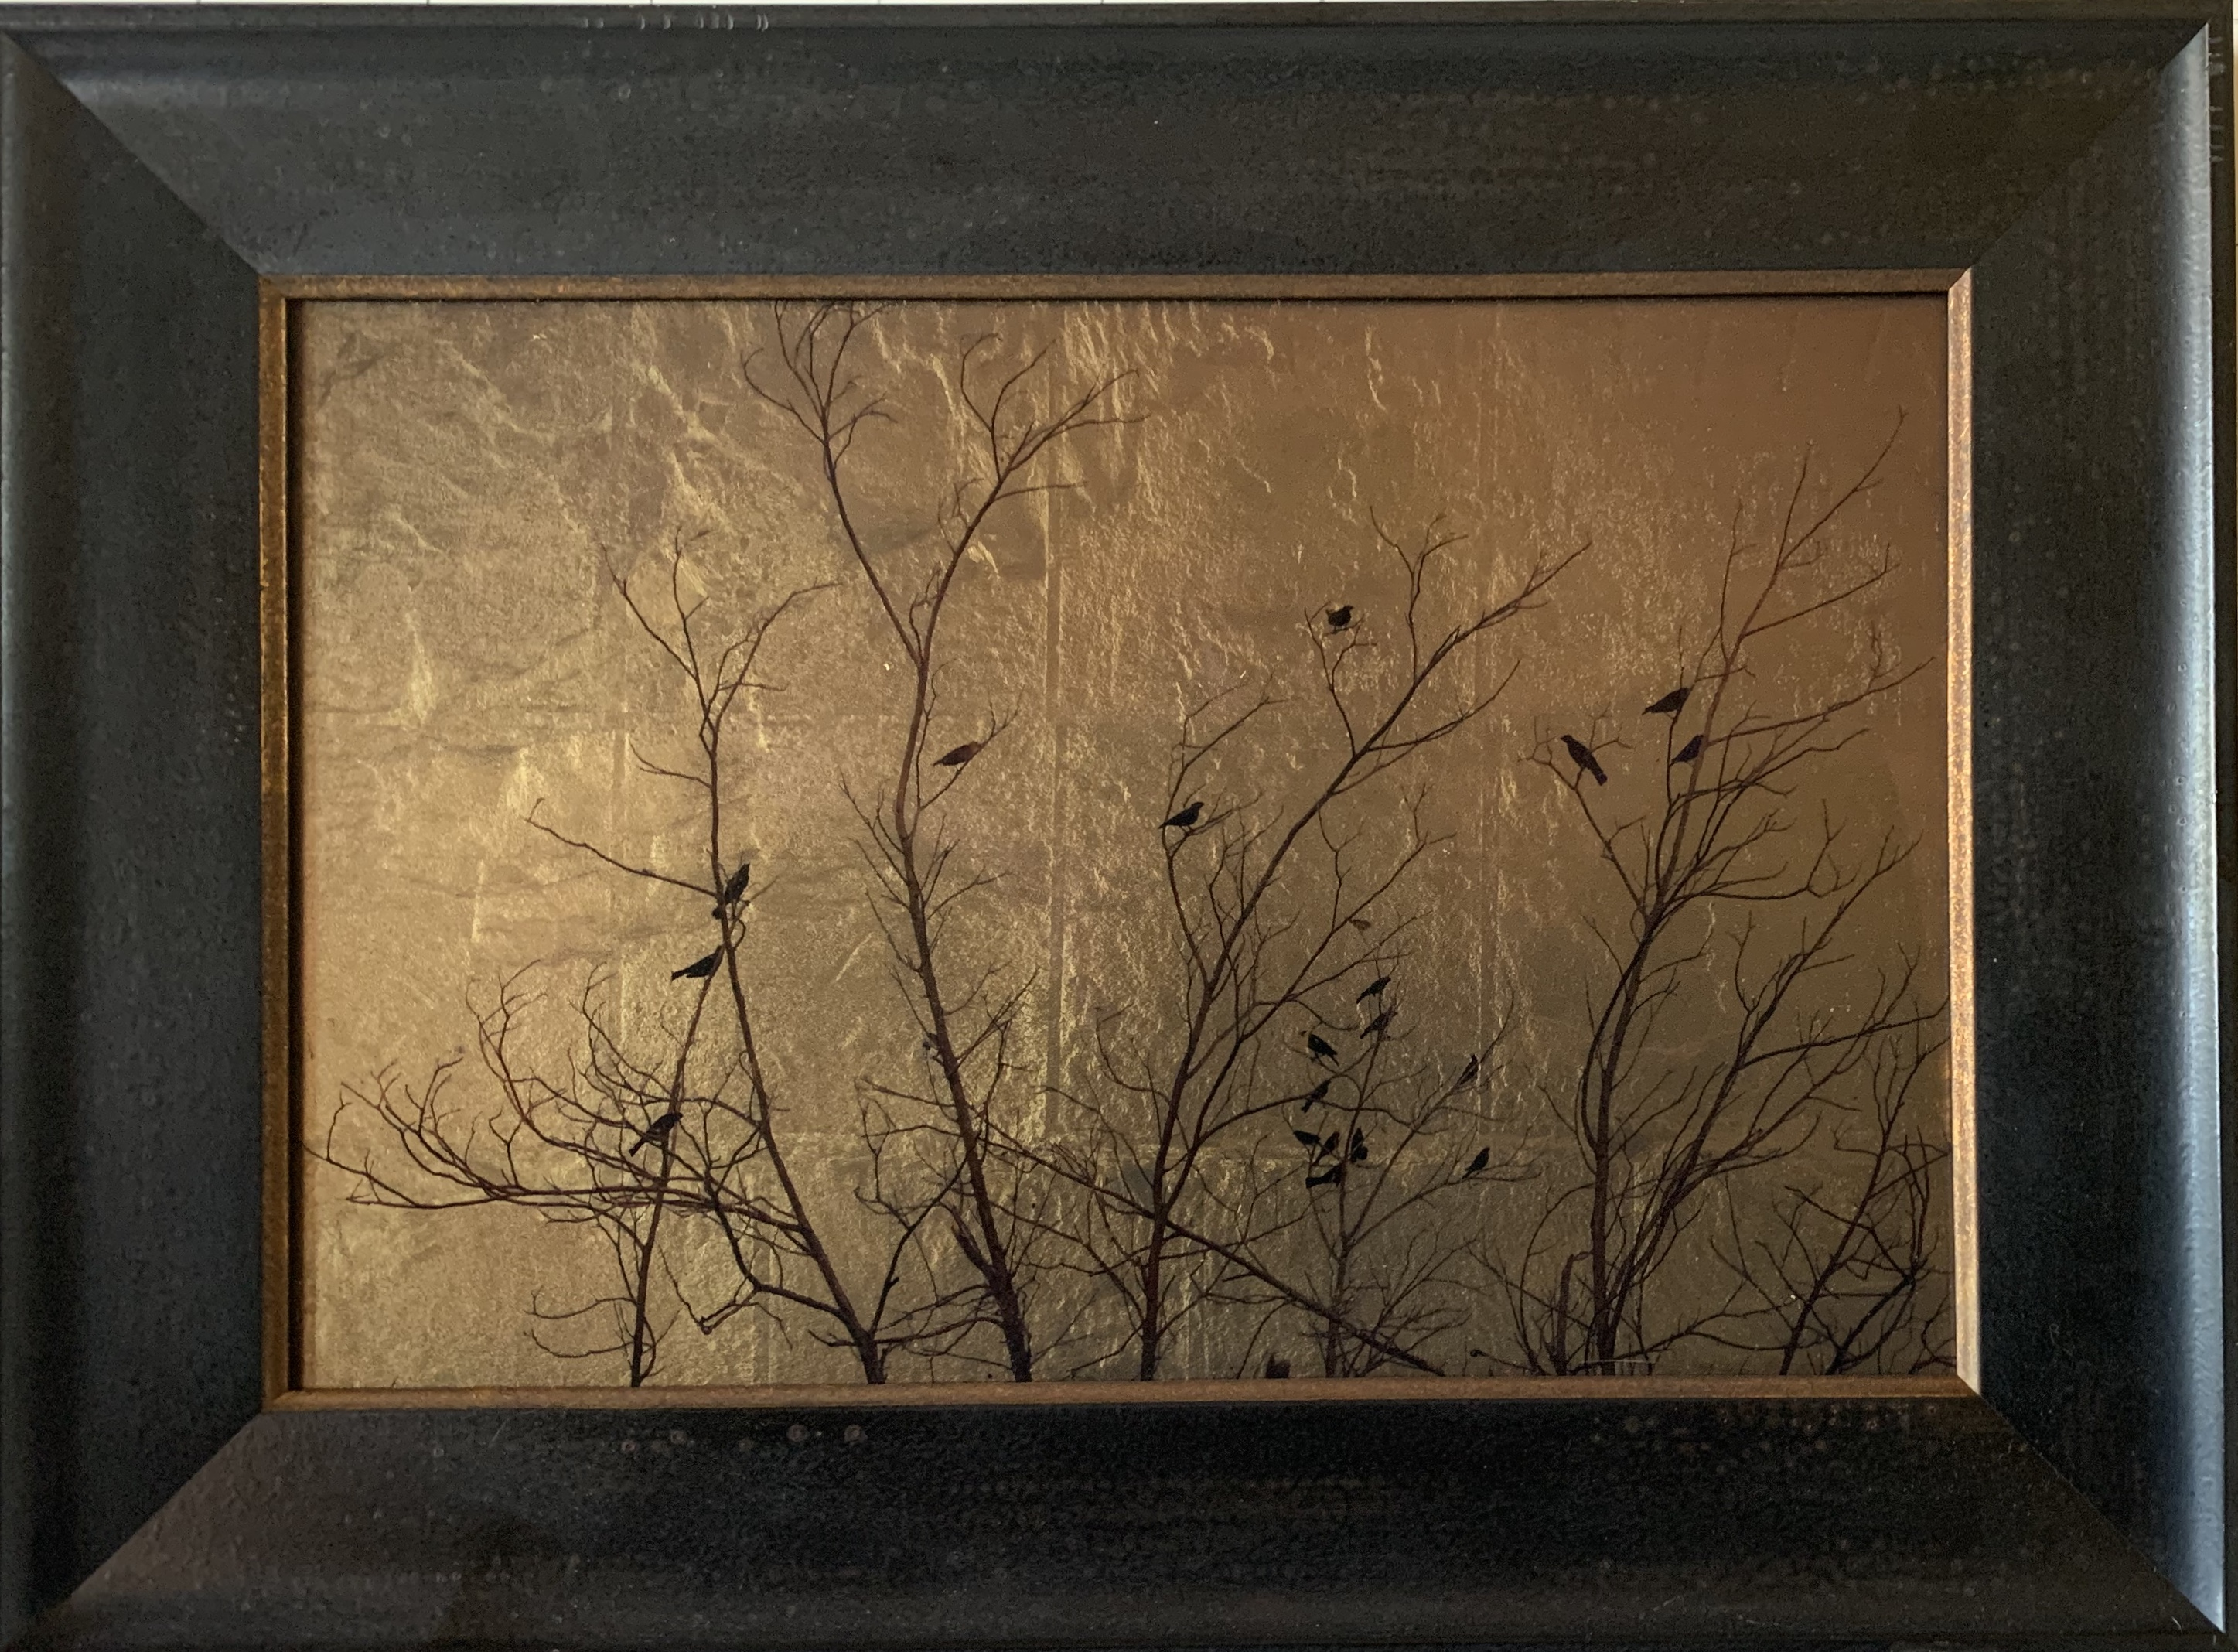 Twenty-two Birds in Bare Tree, New Mexico, Kate Breakey, Modern Day Orotone, Catherine Couturier Gallery